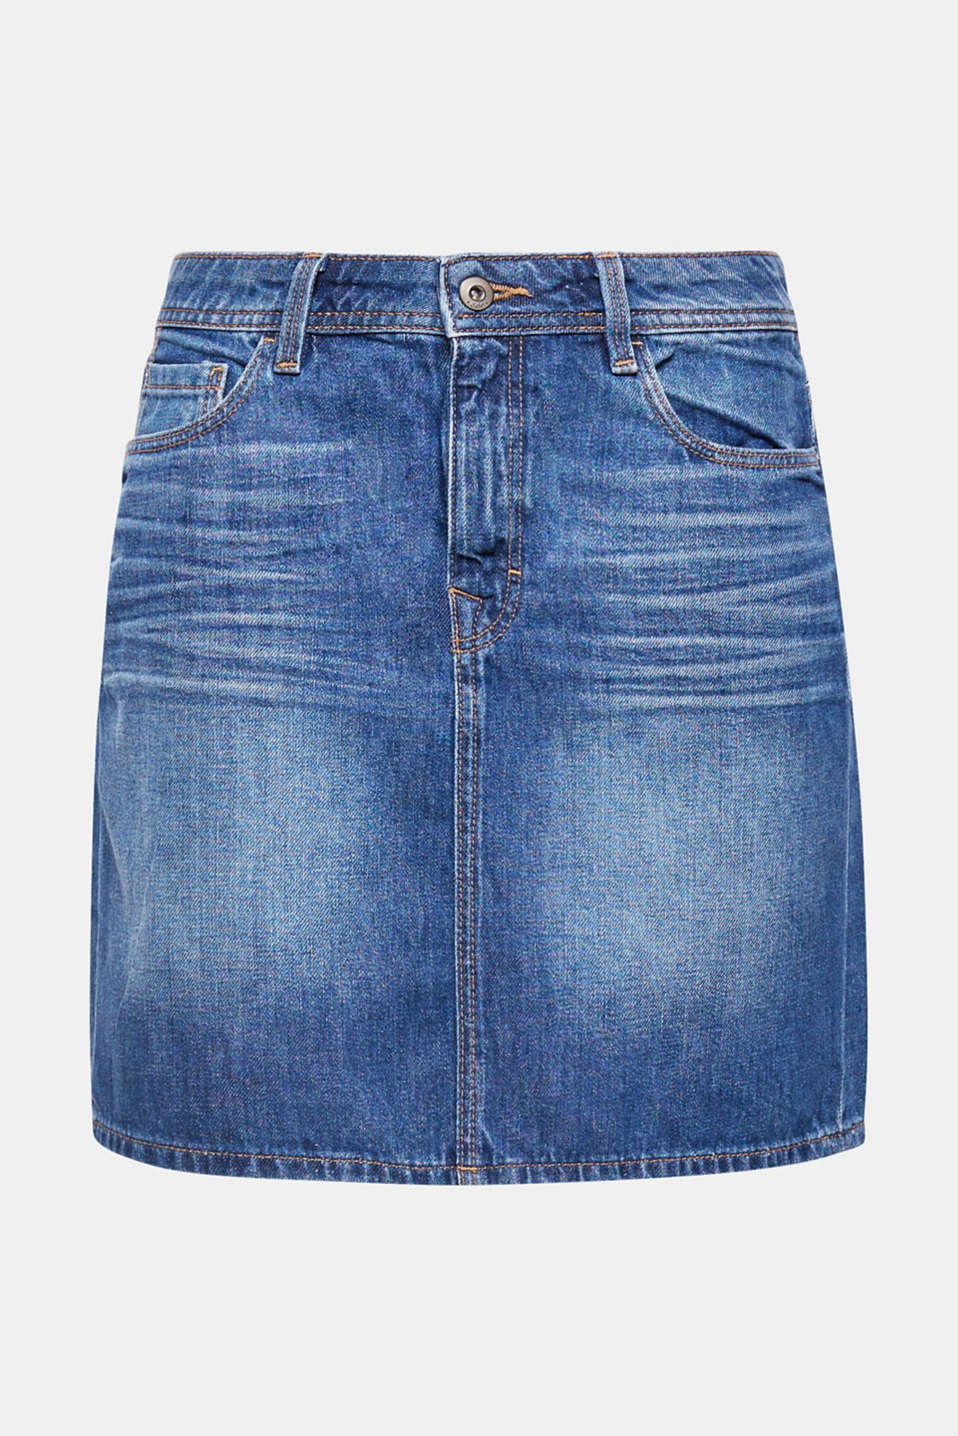 A classic made of recycled cotton: denim skirt in pure cotton with casual washed-out effects.